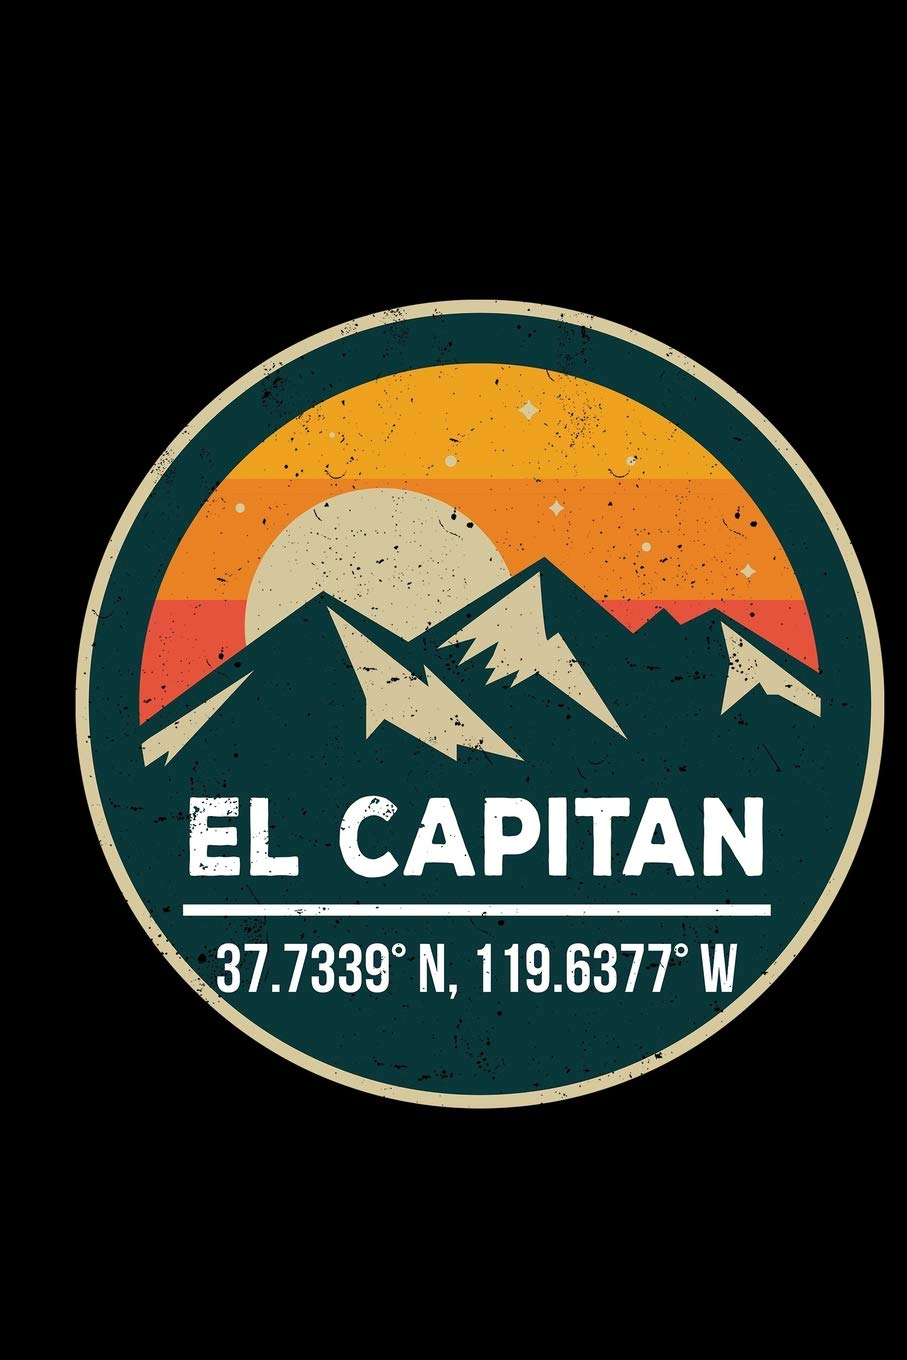 El Capitan: 6x9 inch travel size 120 pages lined journal / notebook